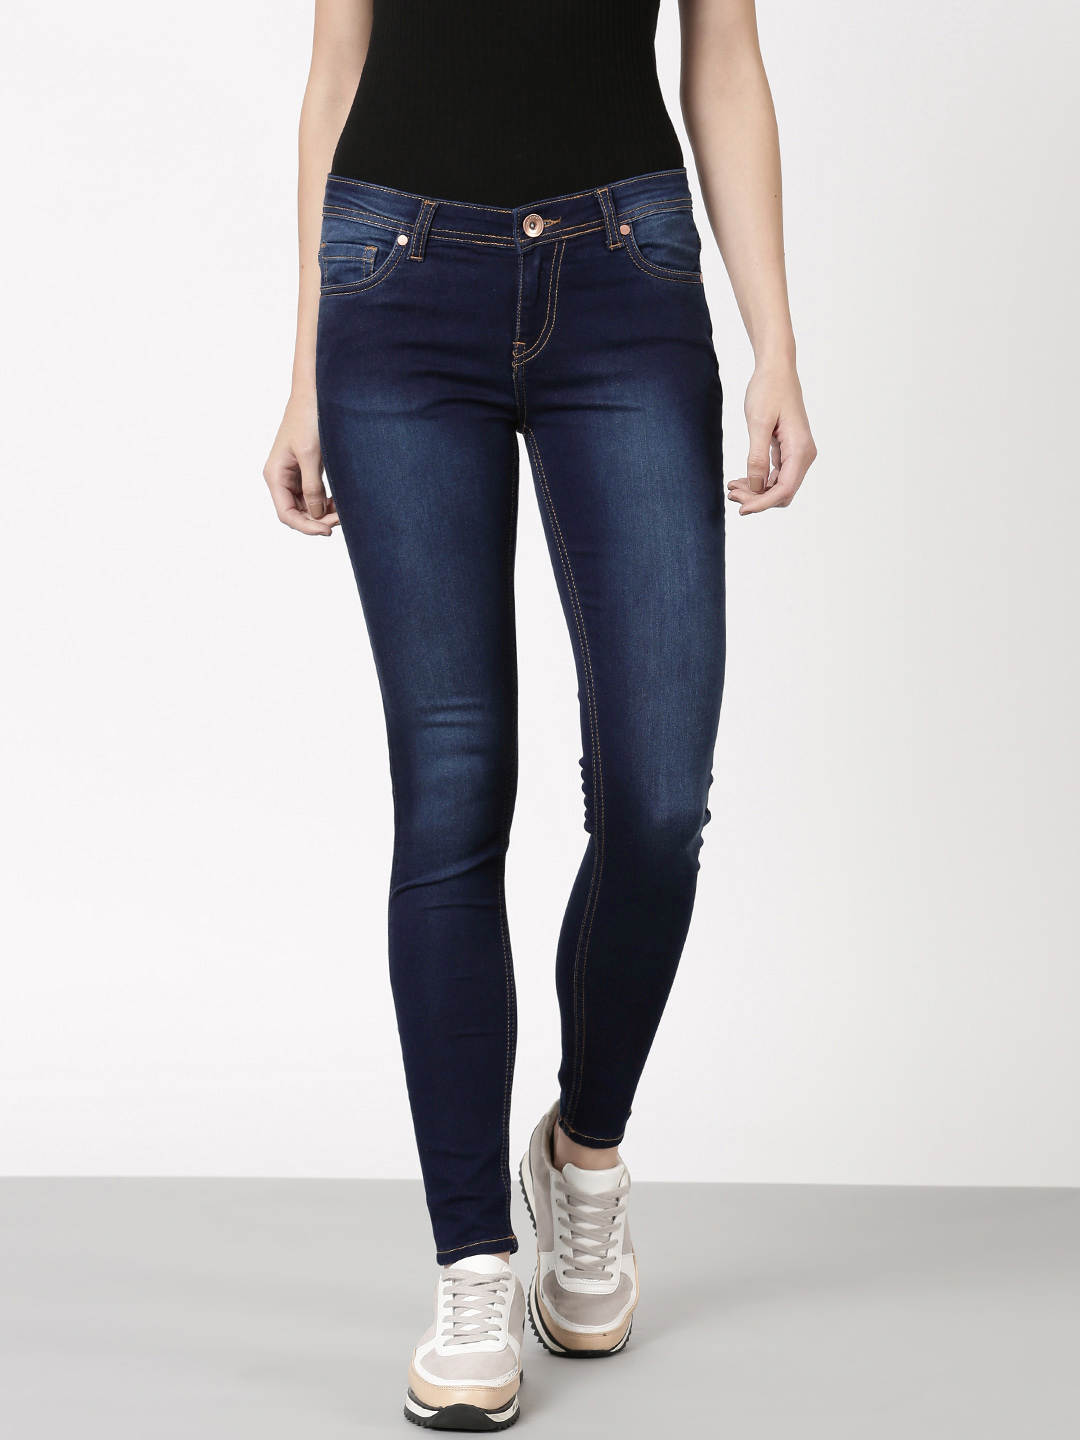 ether Women Blue Skinny Fit Mid-Rise Clean Look Jeans Price in India